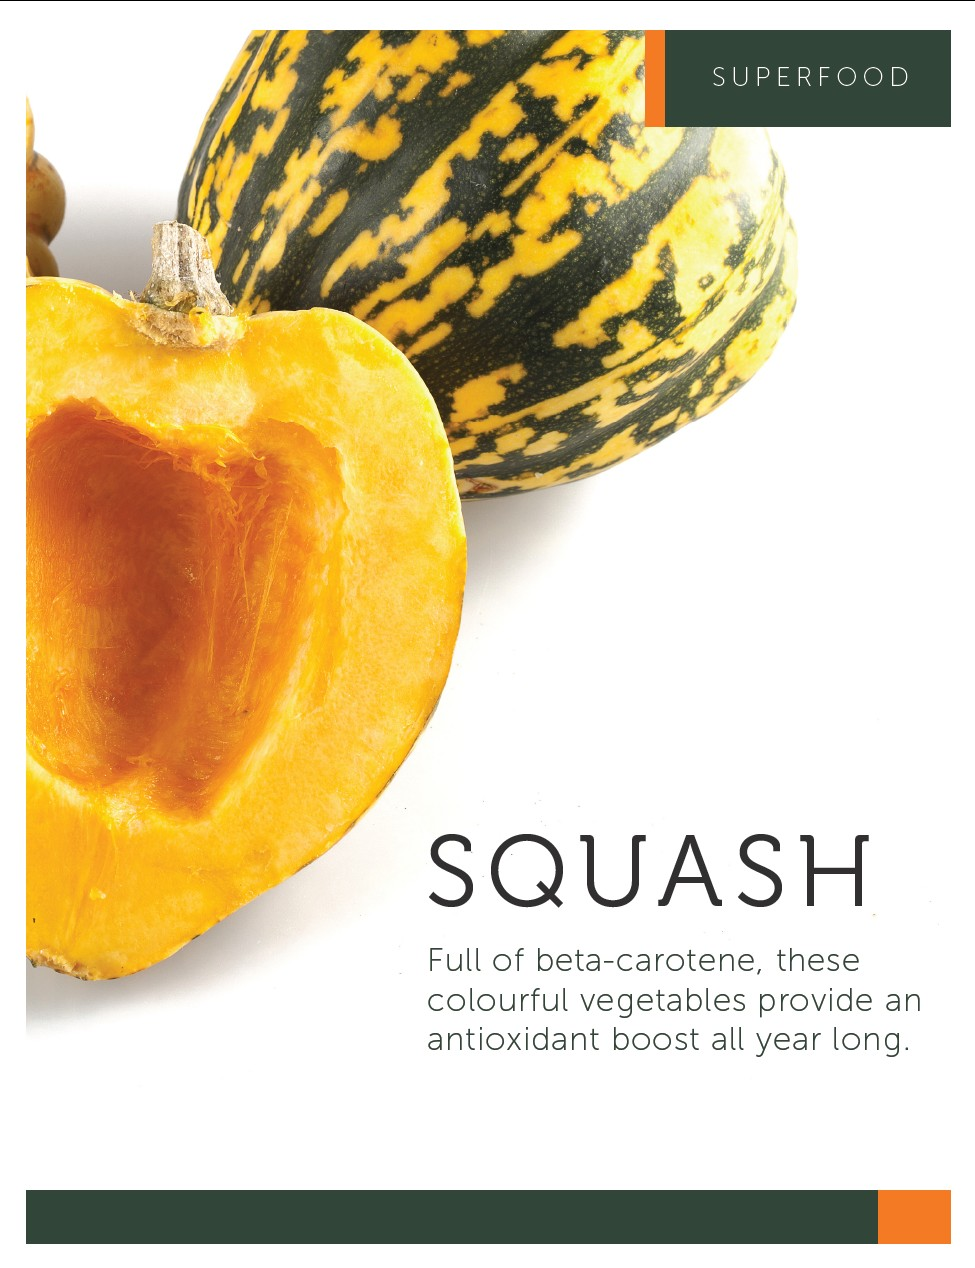 SUPERFOOD SQUASH